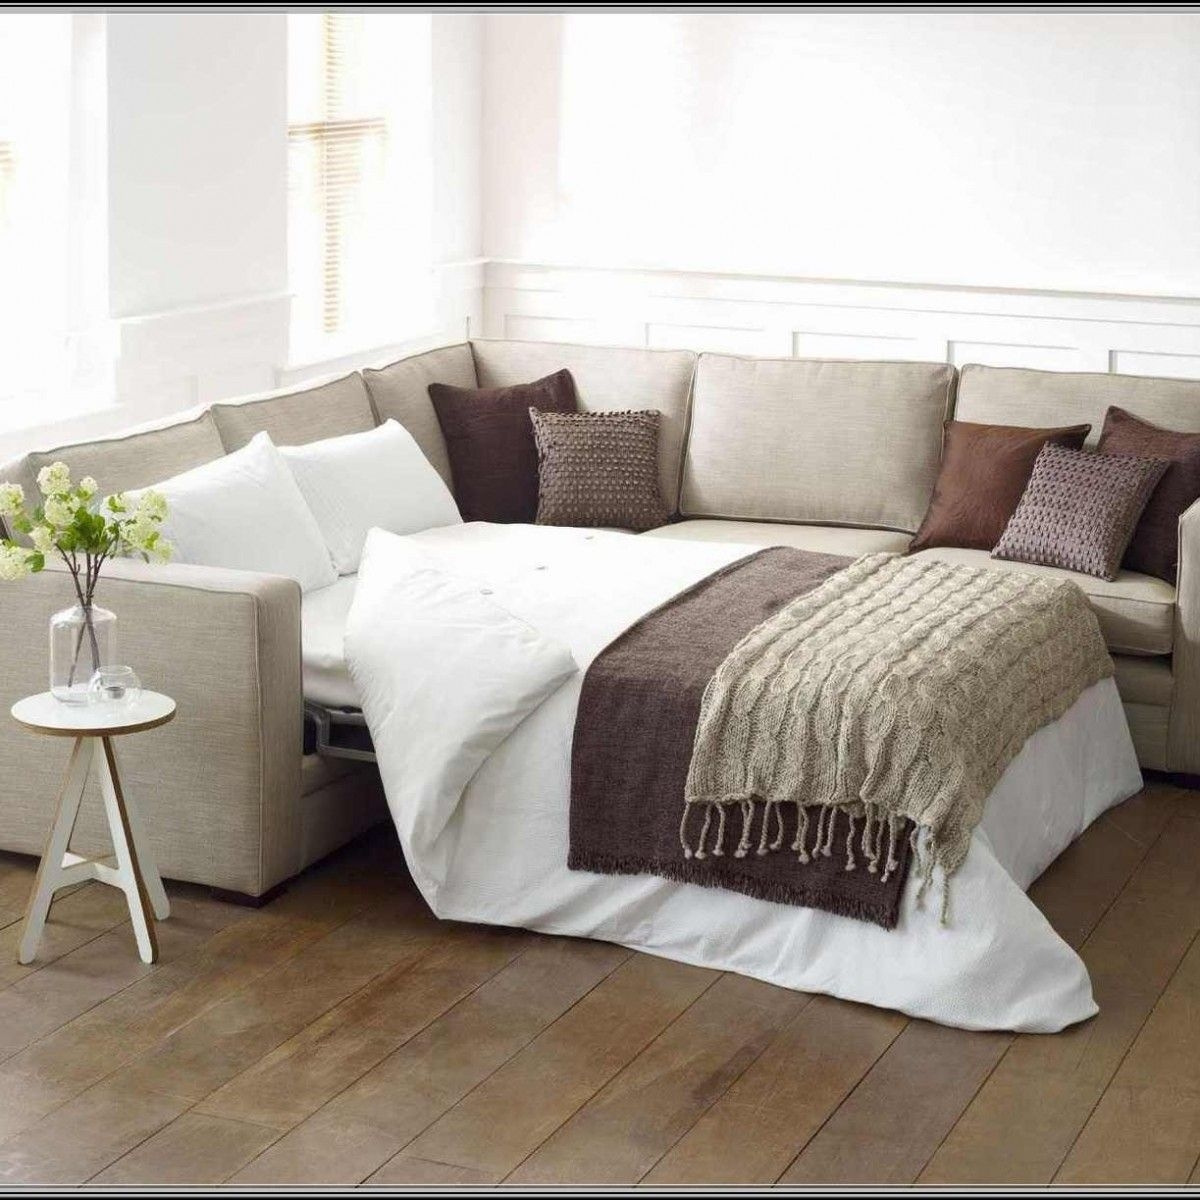 Sectional Sleeper Sofas For Small Spaces Important Aspects | Our for Sectional Sofas With Queen Size Sleeper (Image 5 of 10)